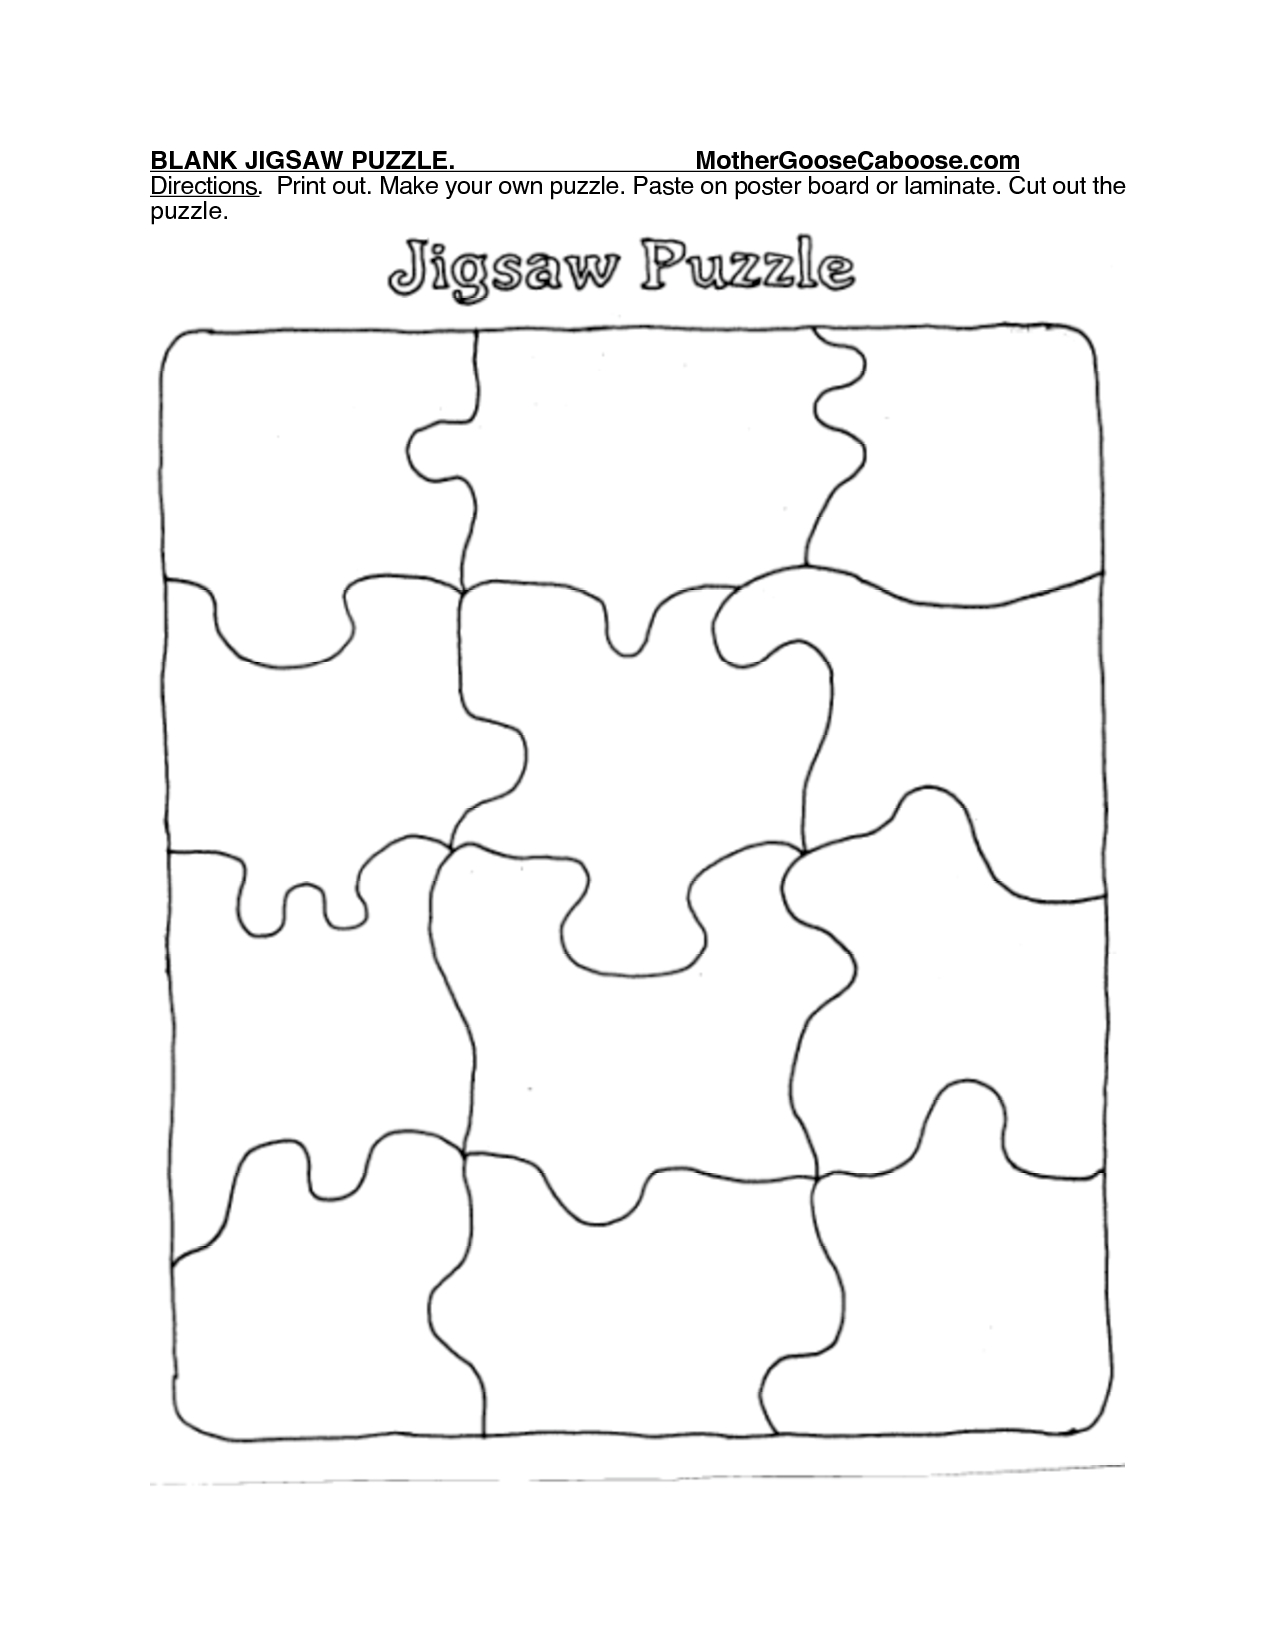 Printable Puzzle Piece Template | Search Results | New Calendar - Printable Jigsaw Puzzles Template